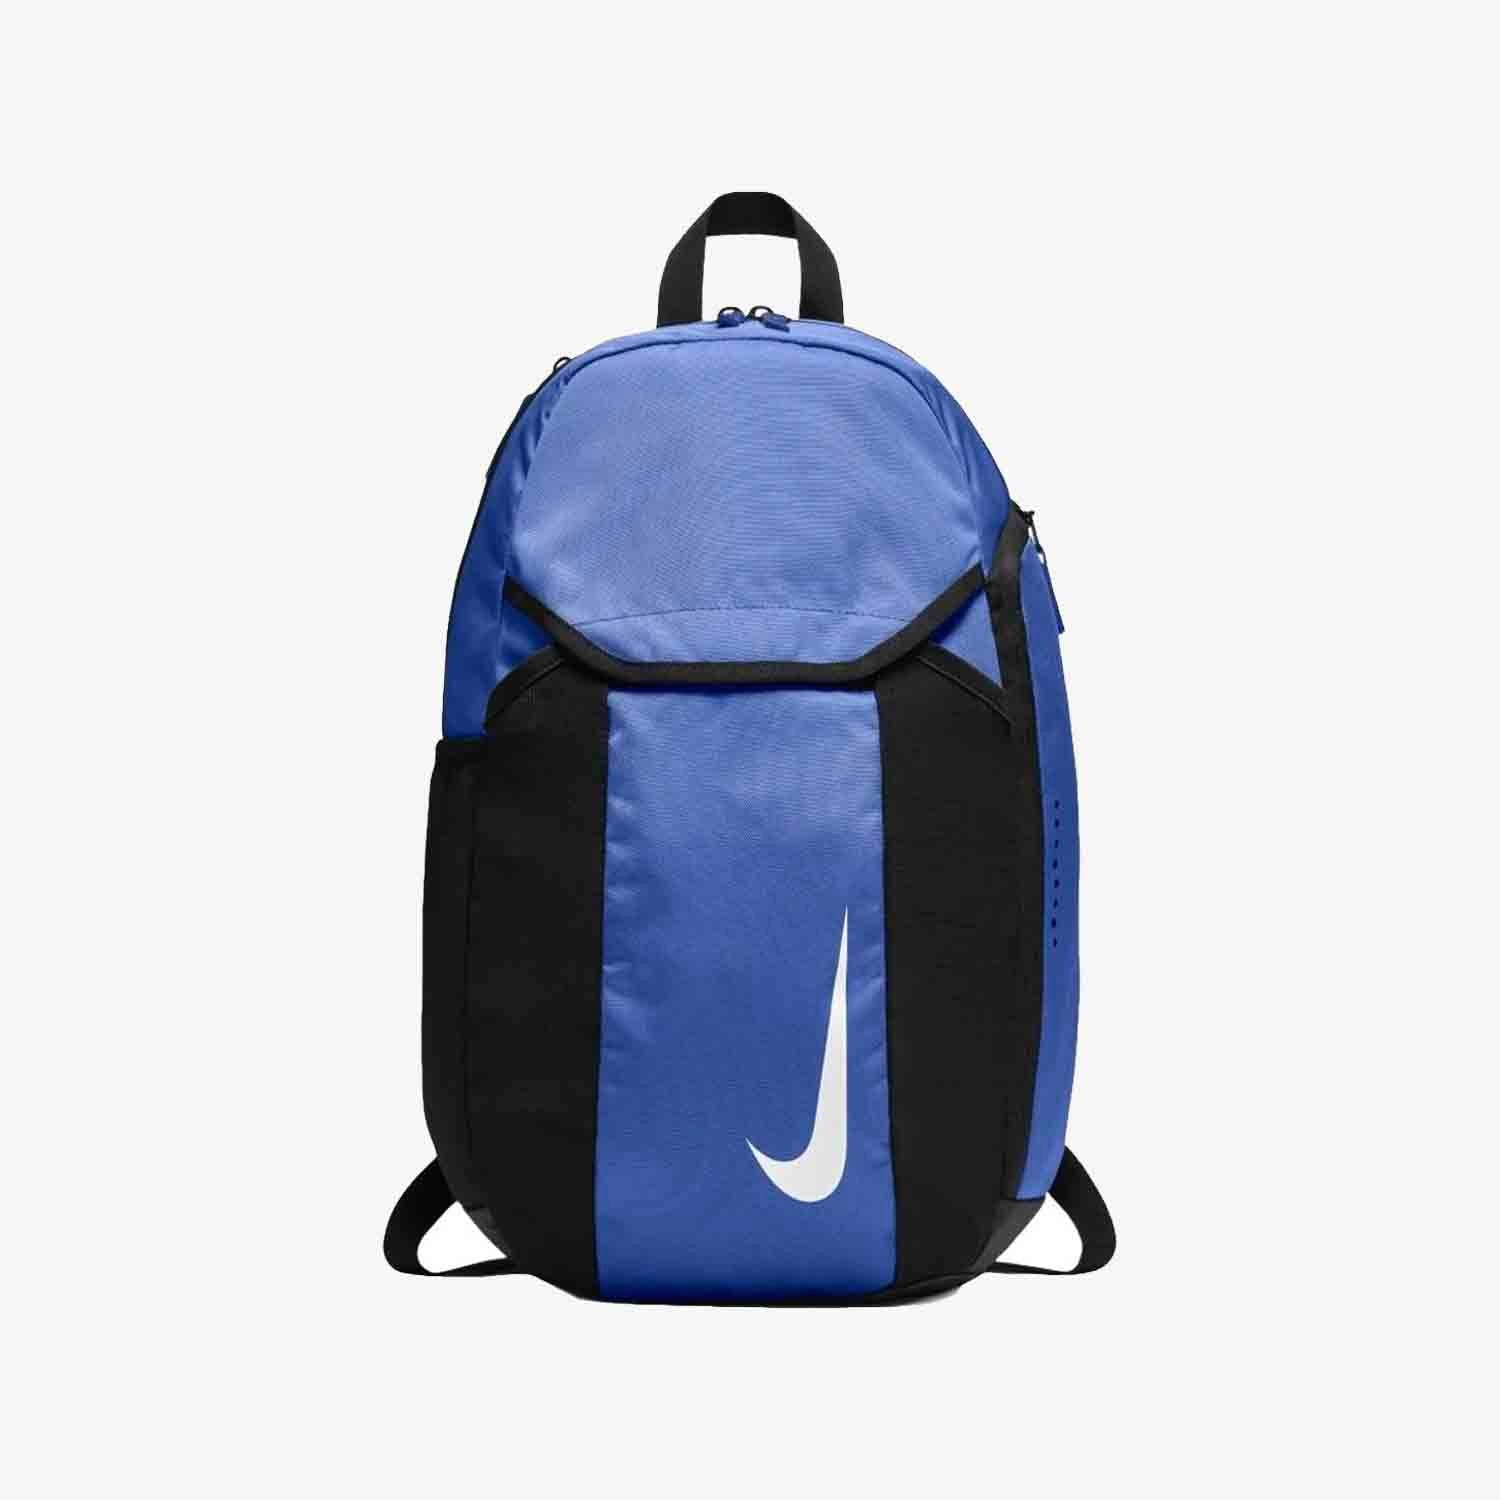 Academy Team Backpack - Game Royal/Black/White